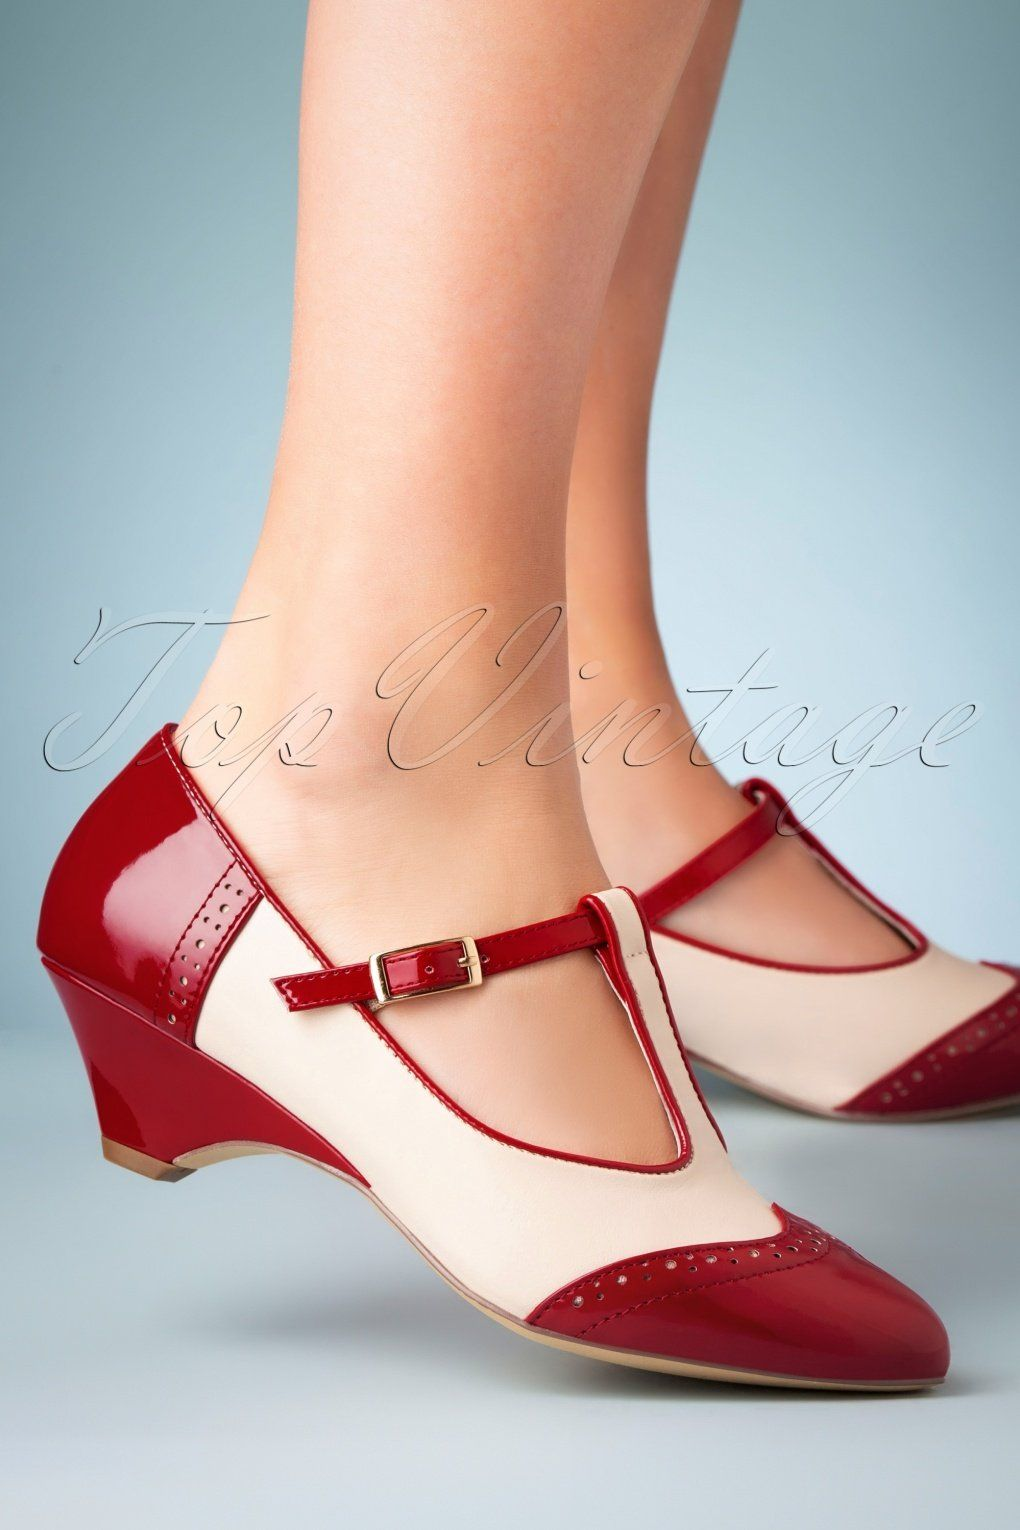 1950s Shoe Styles History And Shopping Guide In 2020 1950s Fashion Shoes Rockabilly Shoes Strap Pumps